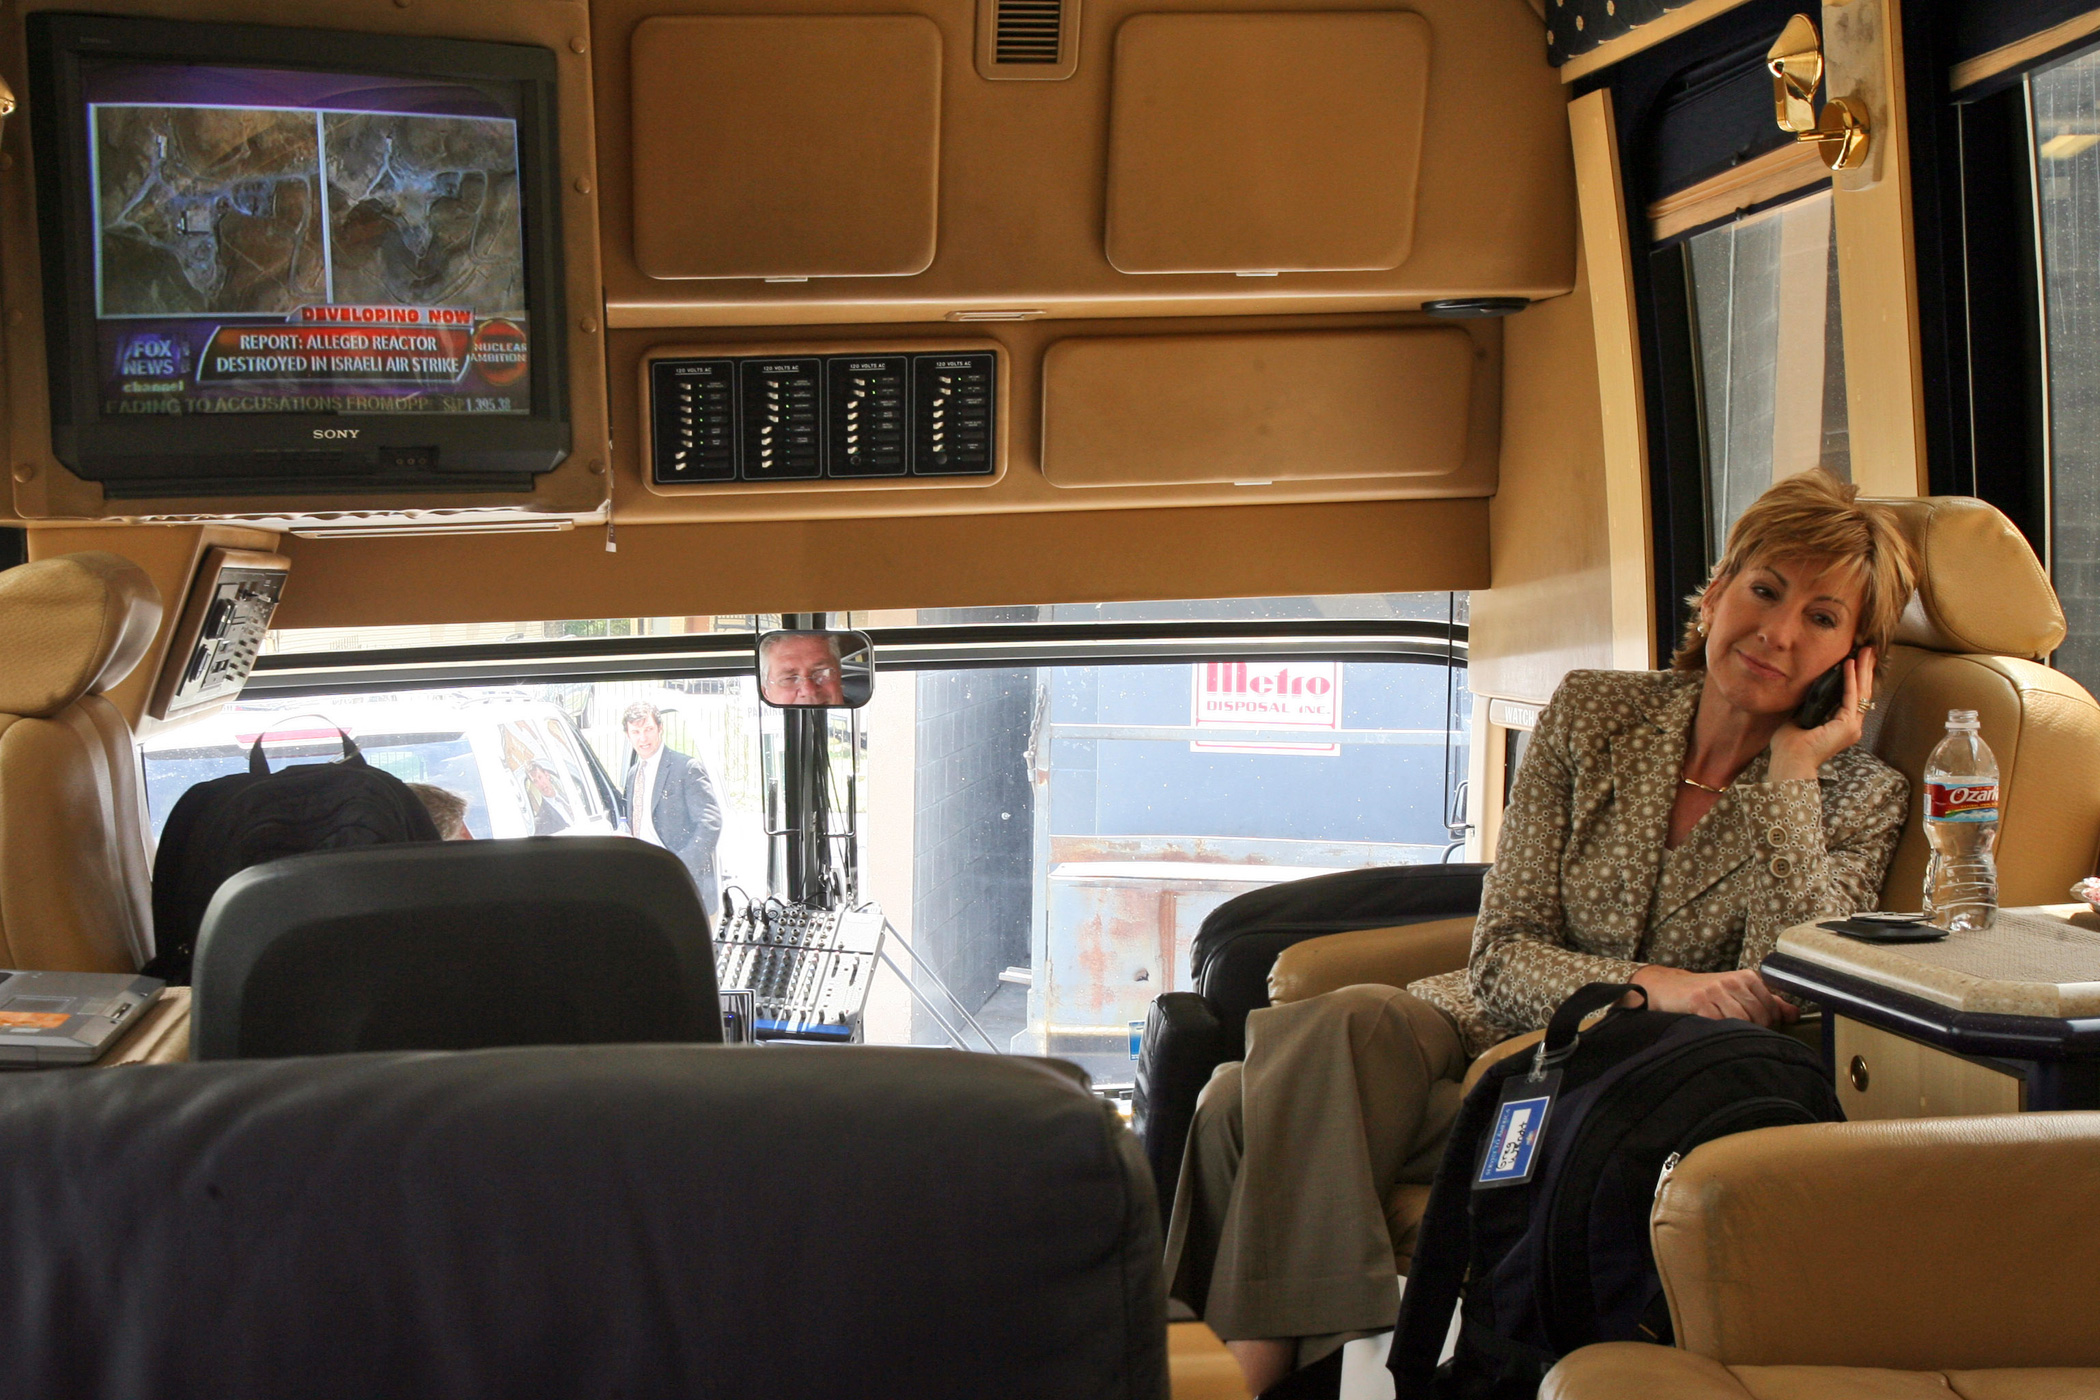 """Carly Fiorina, as an adviser to Republican presidential candidate Sen. John McCain, works inside the """"Straight Talk Express"""" on April 24, 2008 in New Orleans."""